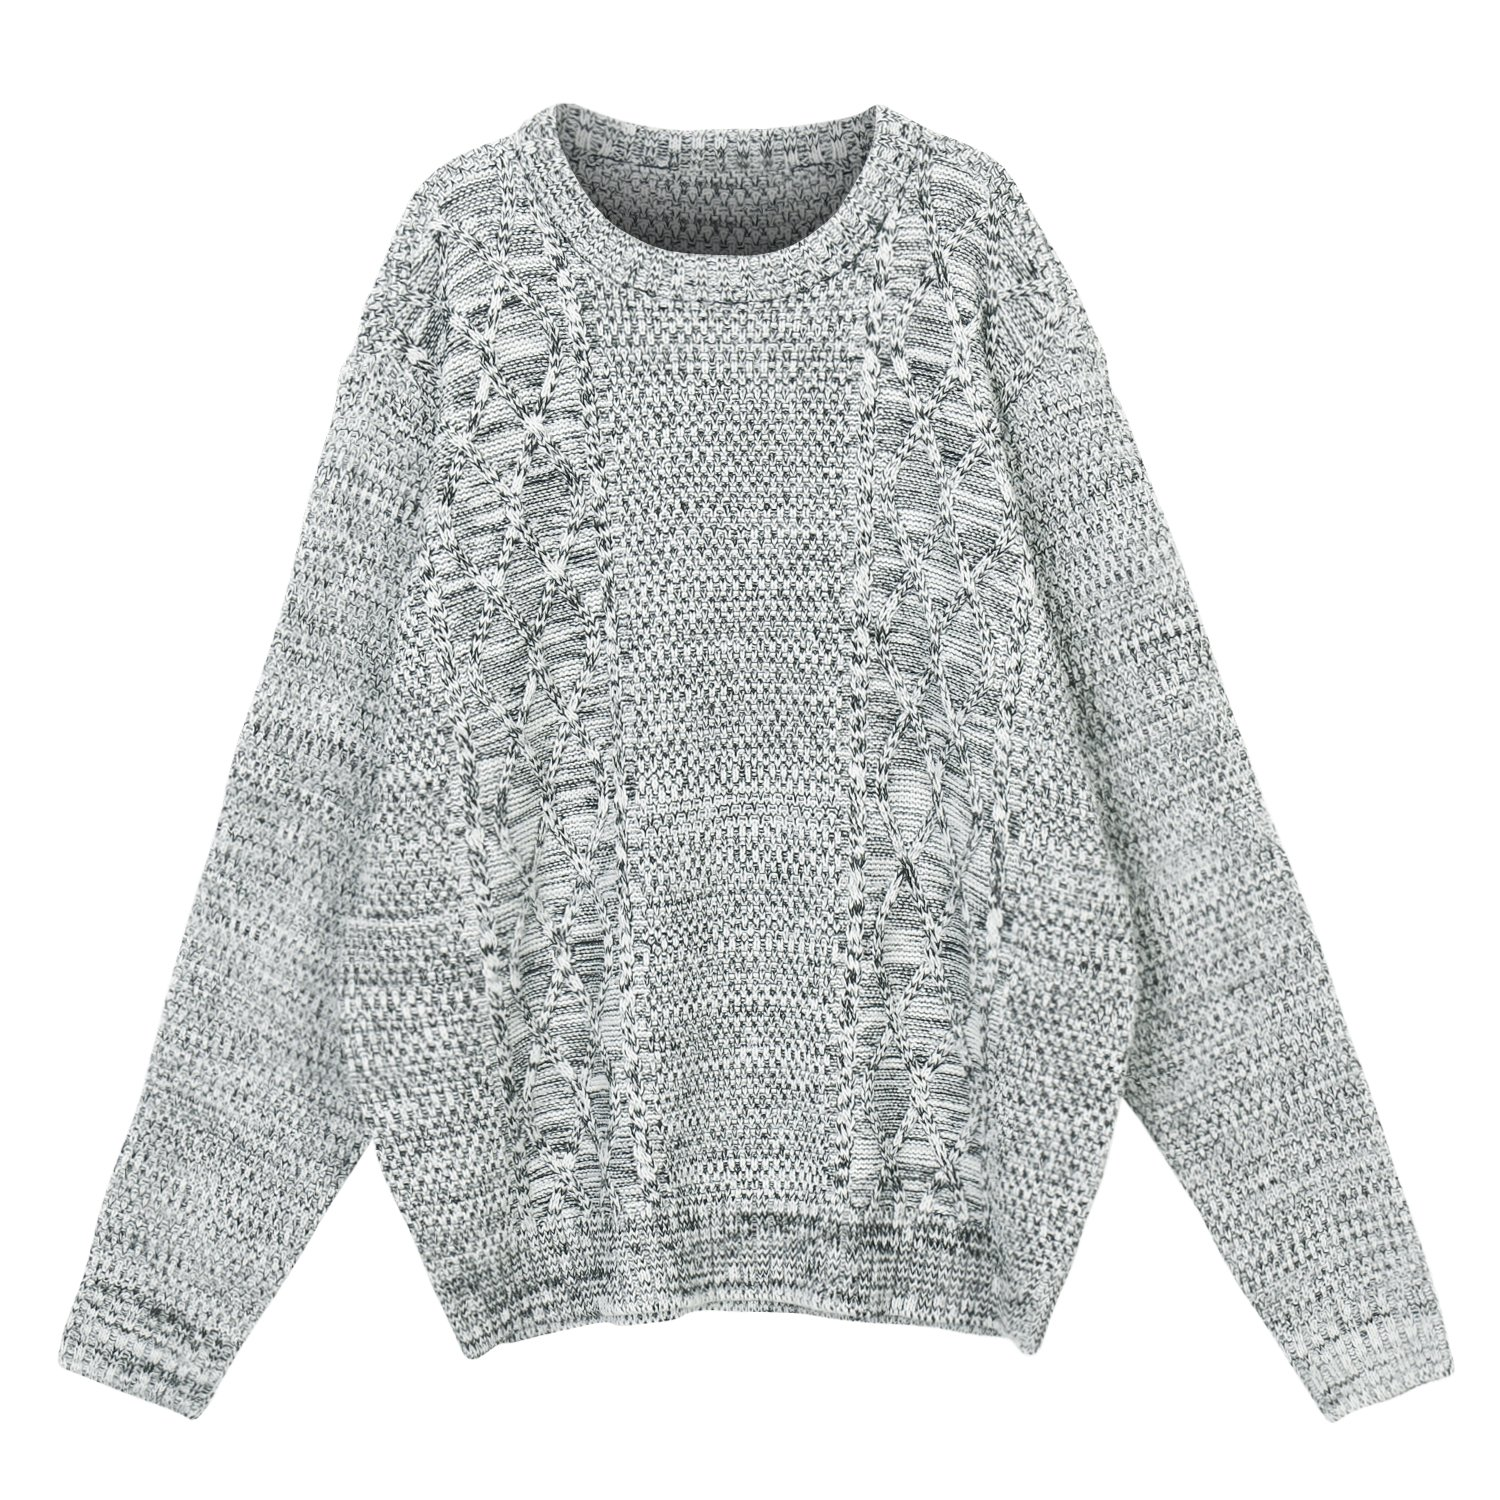 0d187c73e0420d lovely ililily Men Solid Color Long Sleeve Cable Knit Pattern Sweater  Jumper Pullover